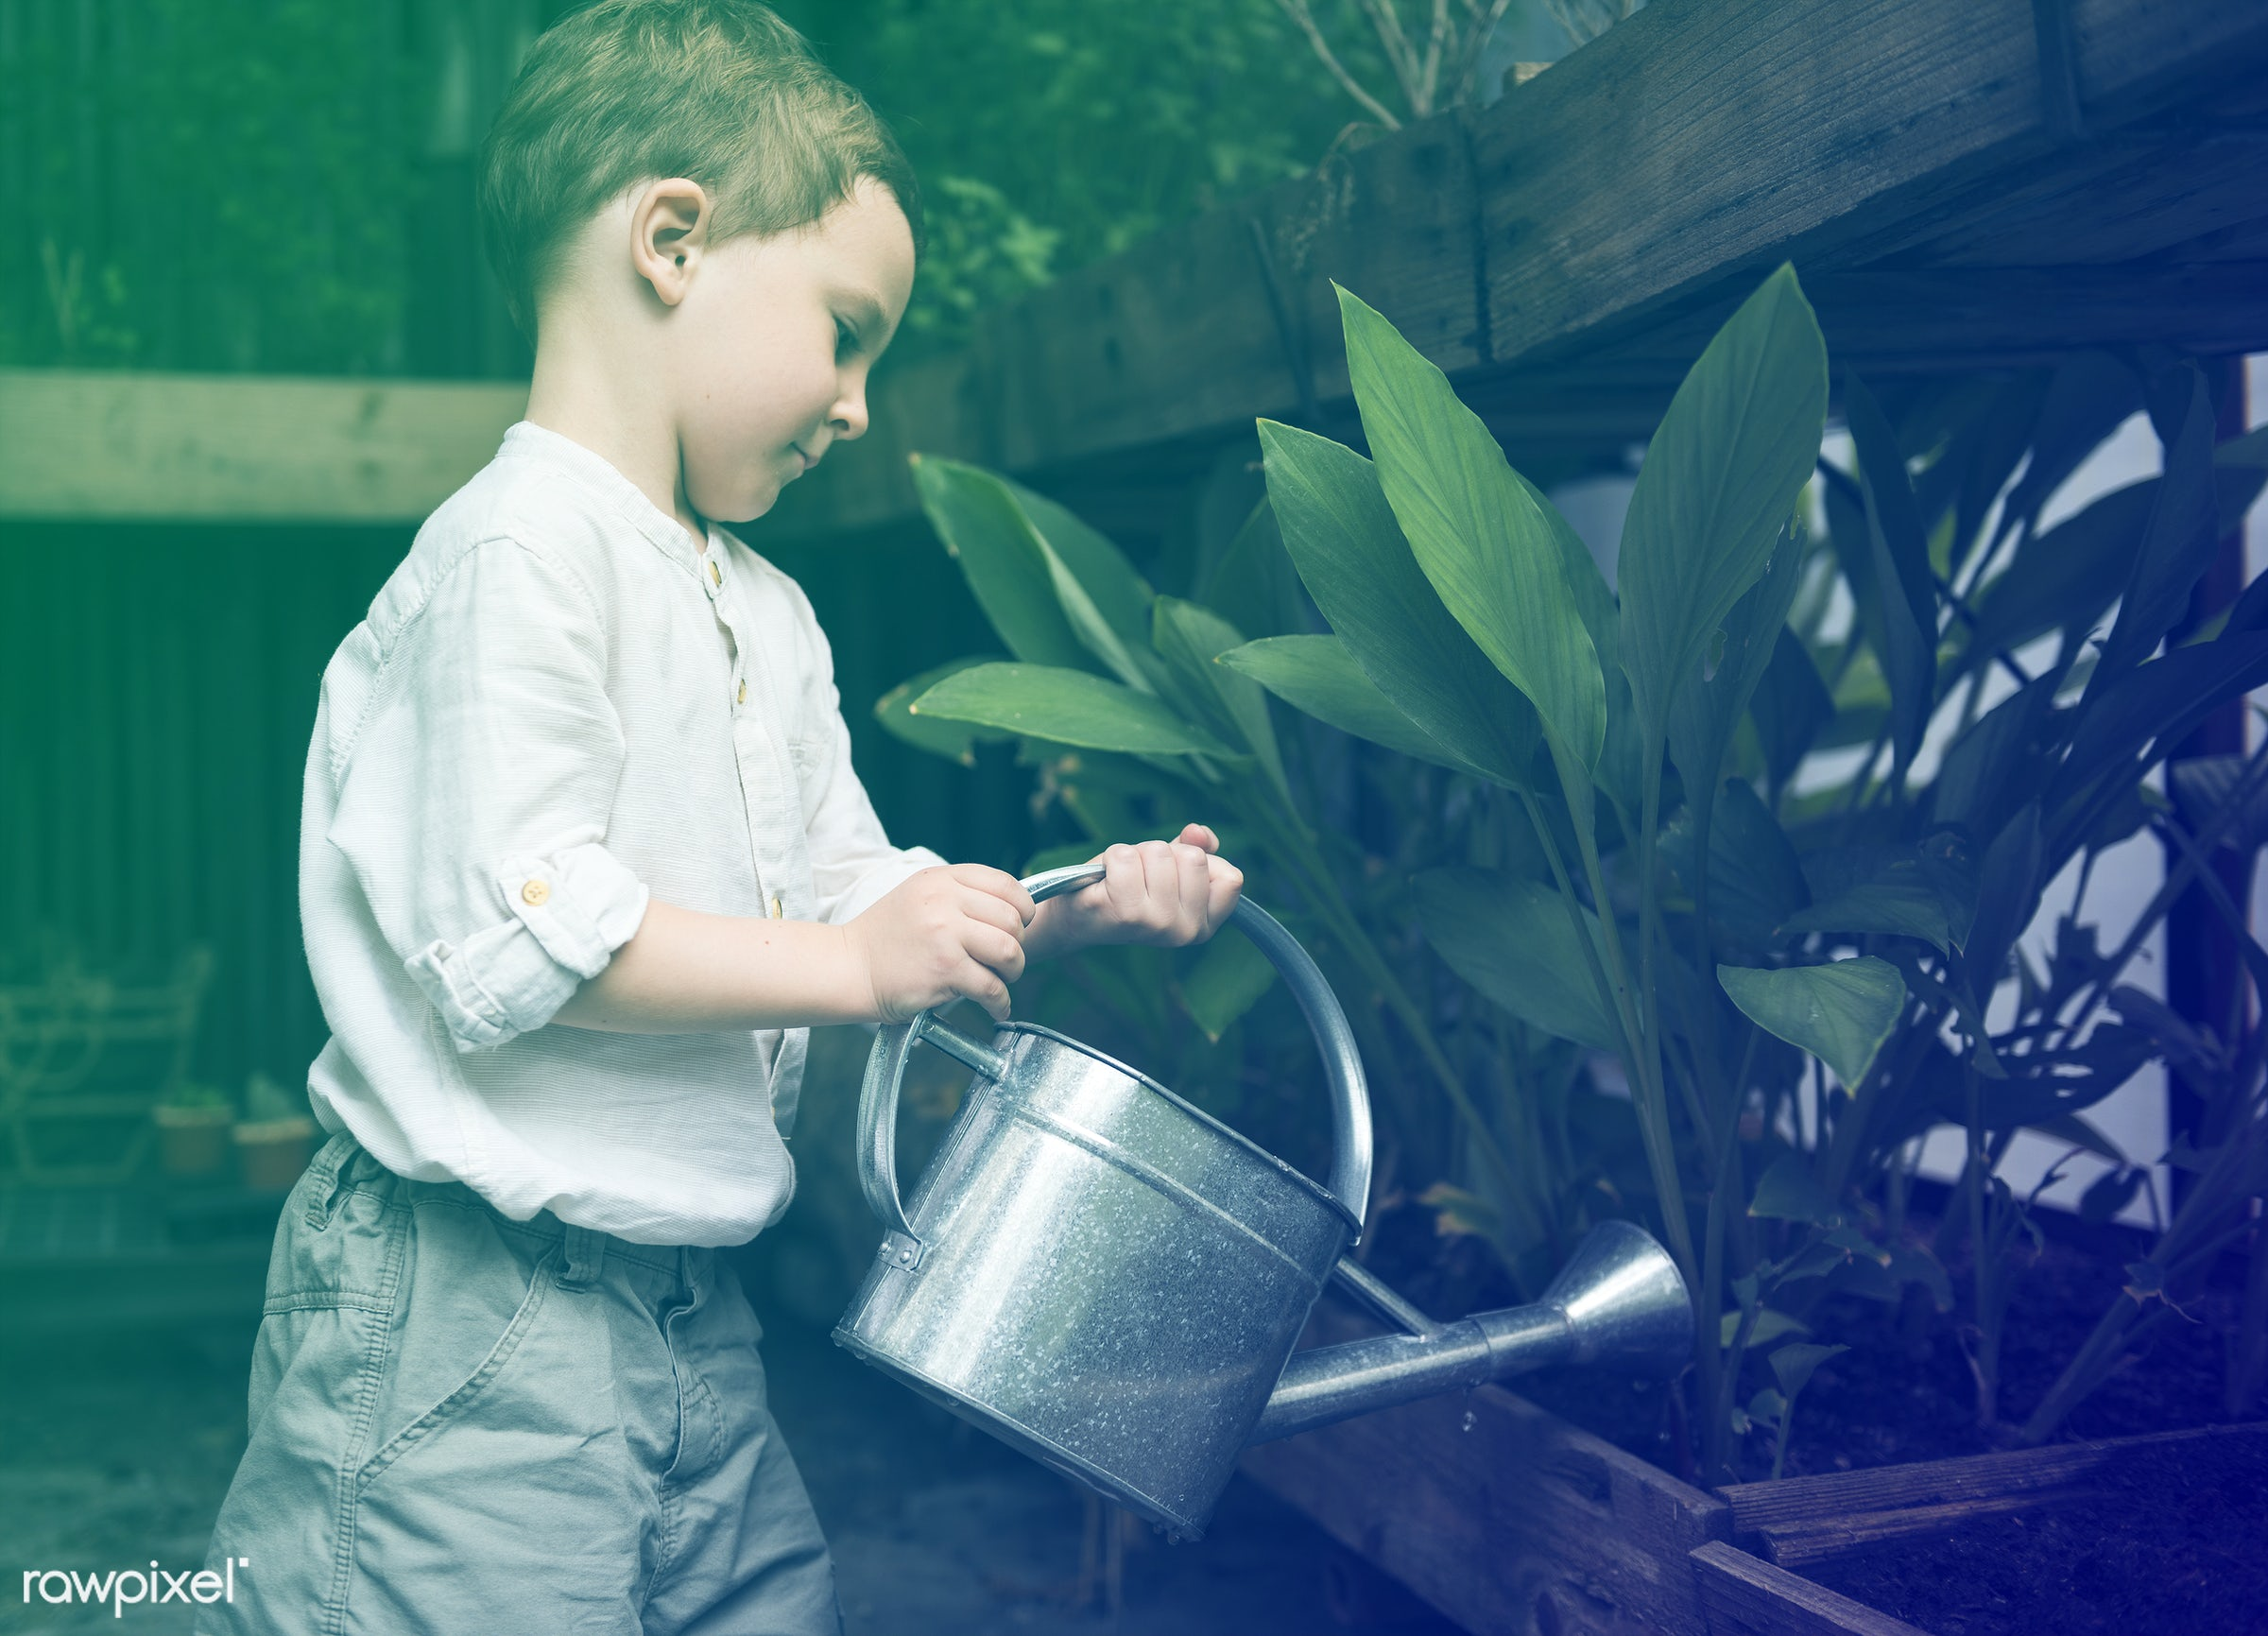 watering, plant, children, recreation, people, kid, child, nature, lomo, interest, ecology, freetime, childhood, passion,...